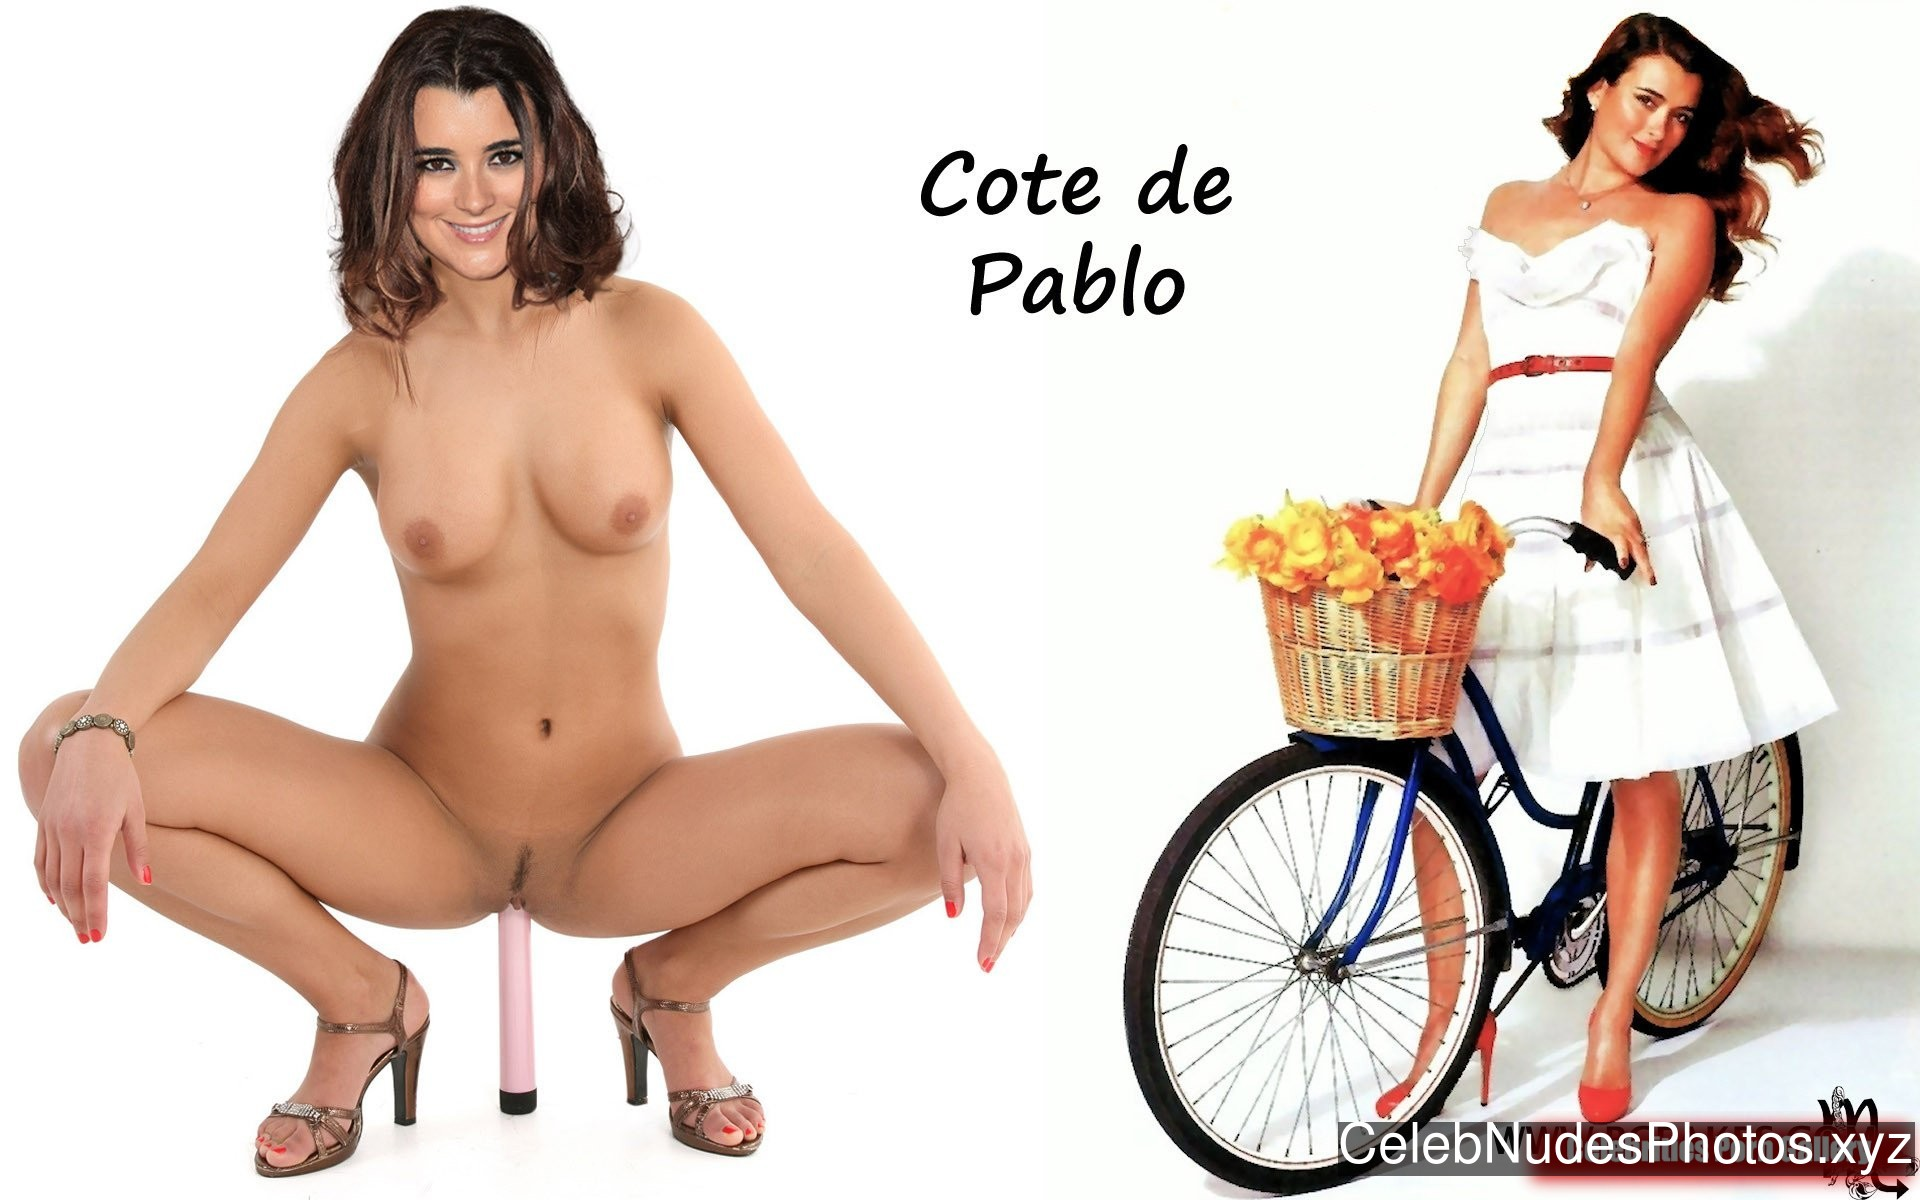 naked pictures of cote de pablo